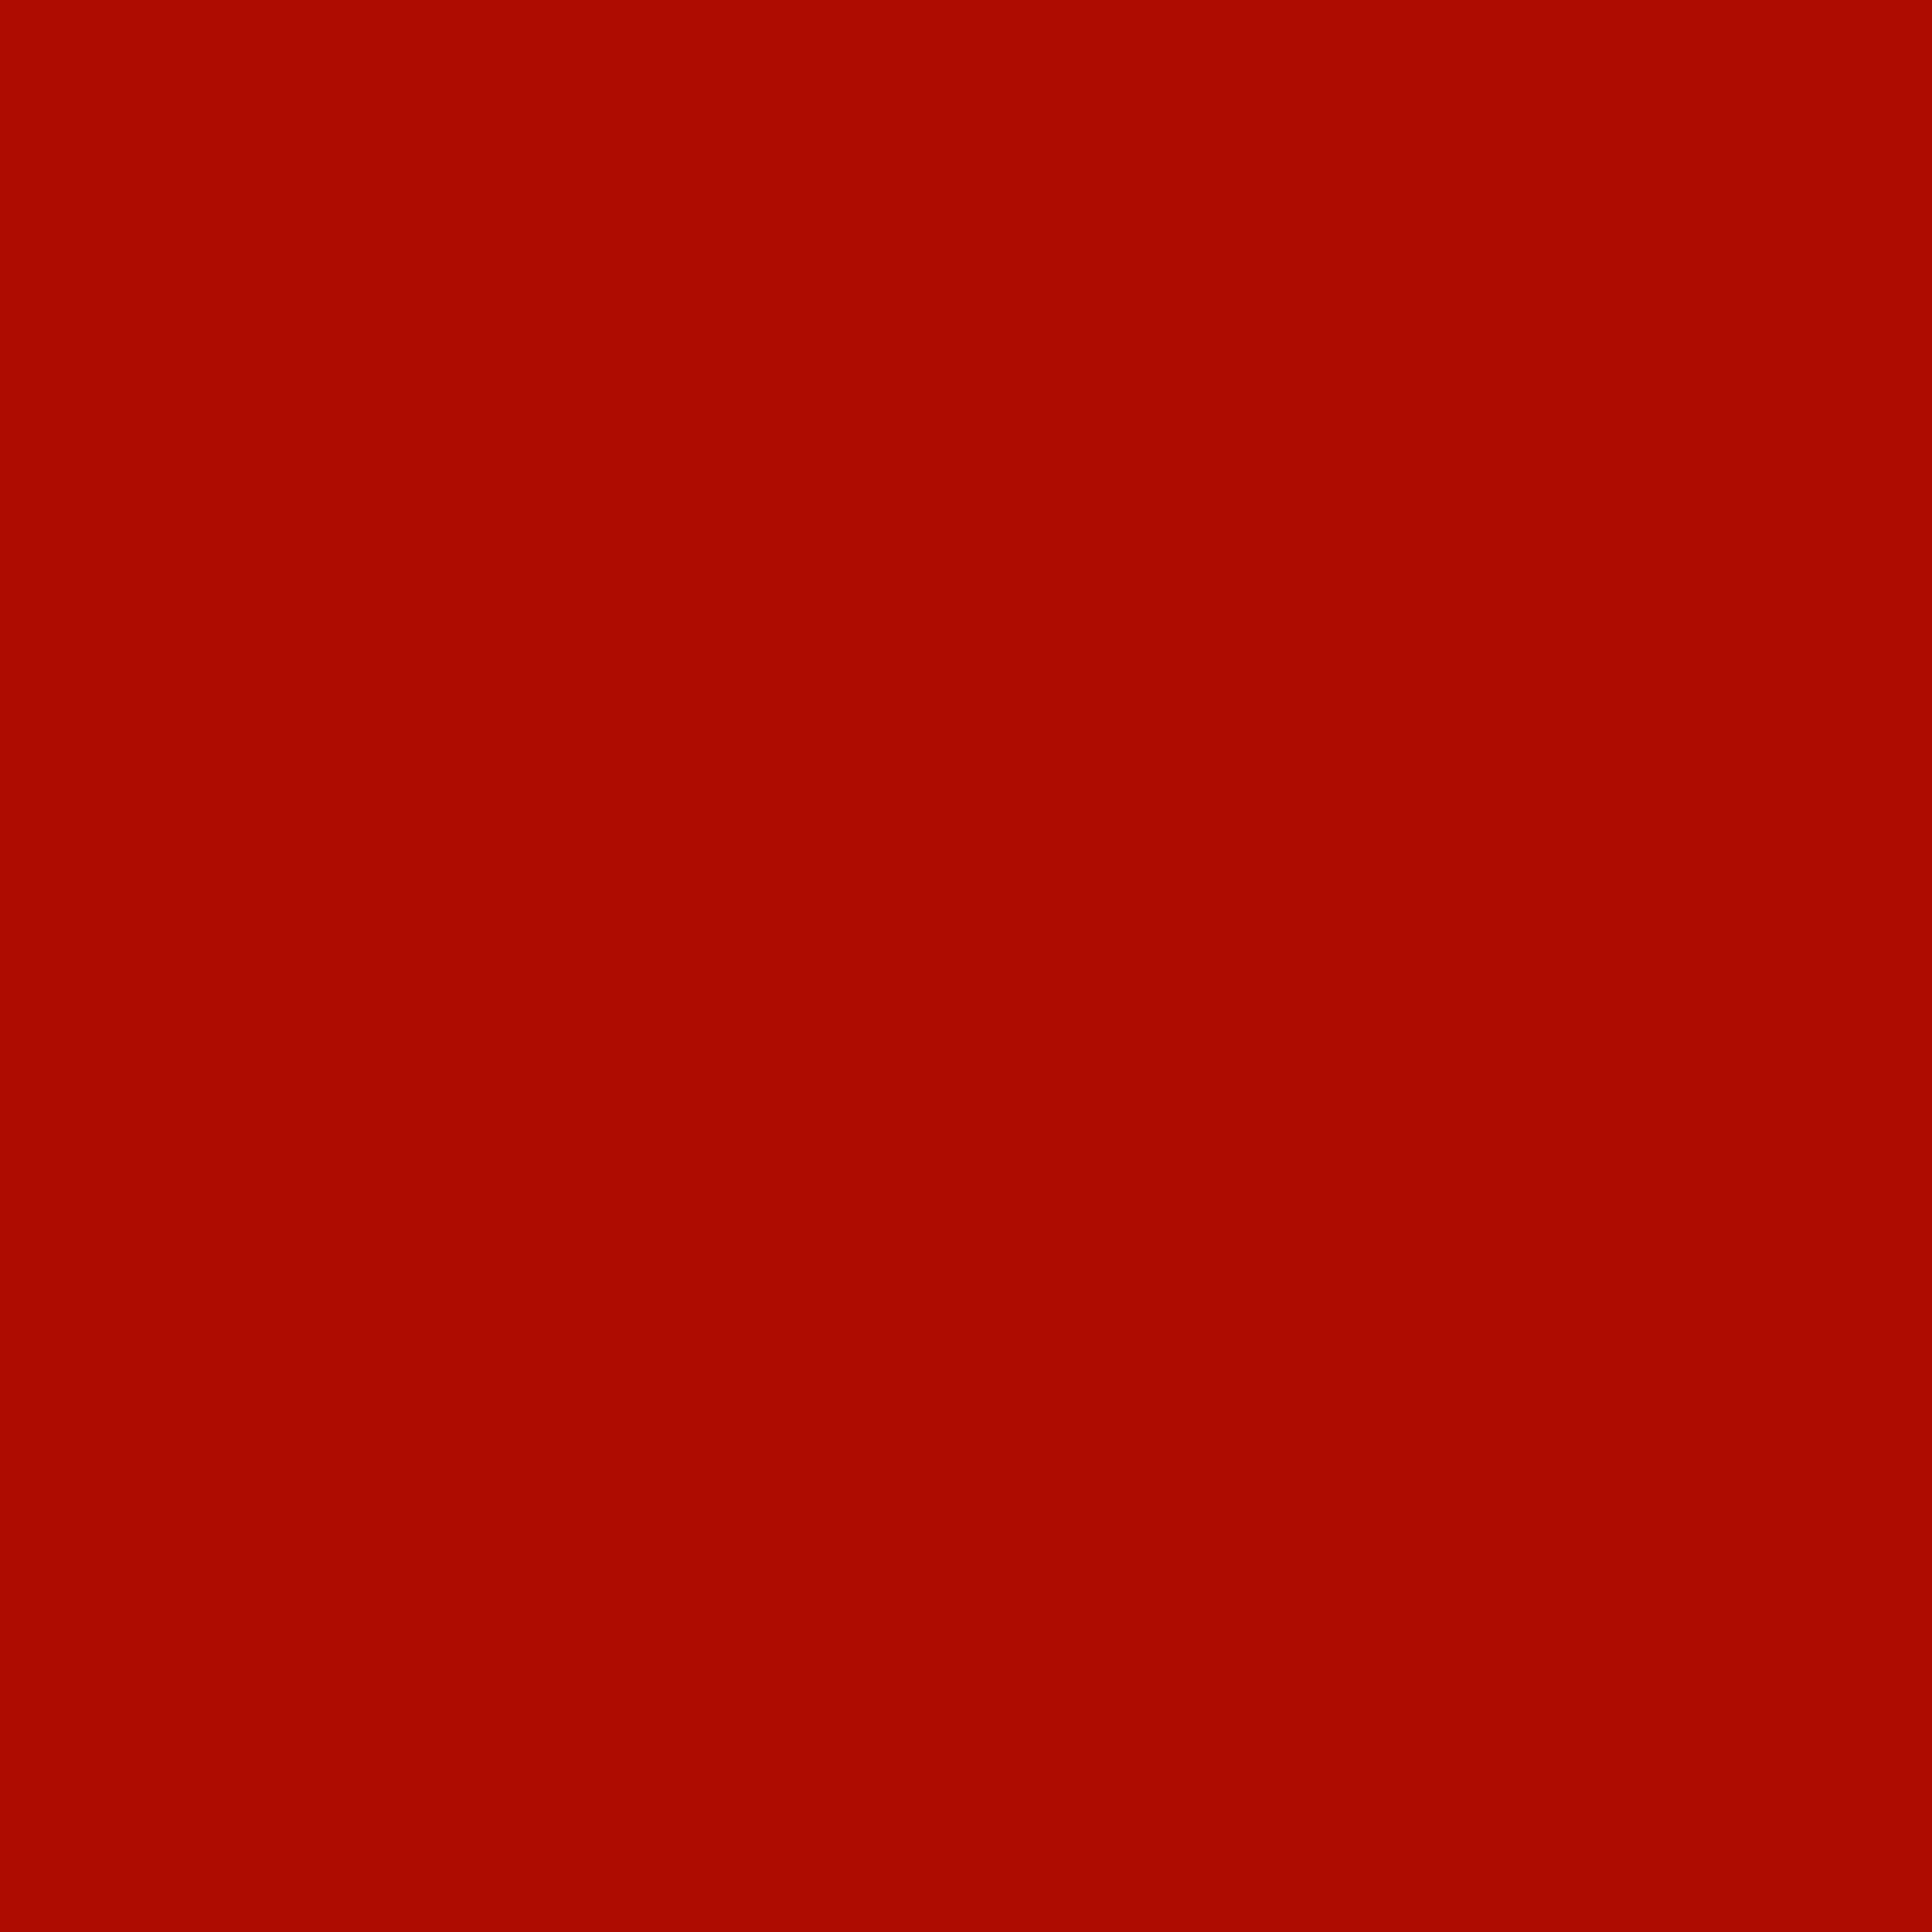 2732x2732 Mordant Red 19 Solid Color Background